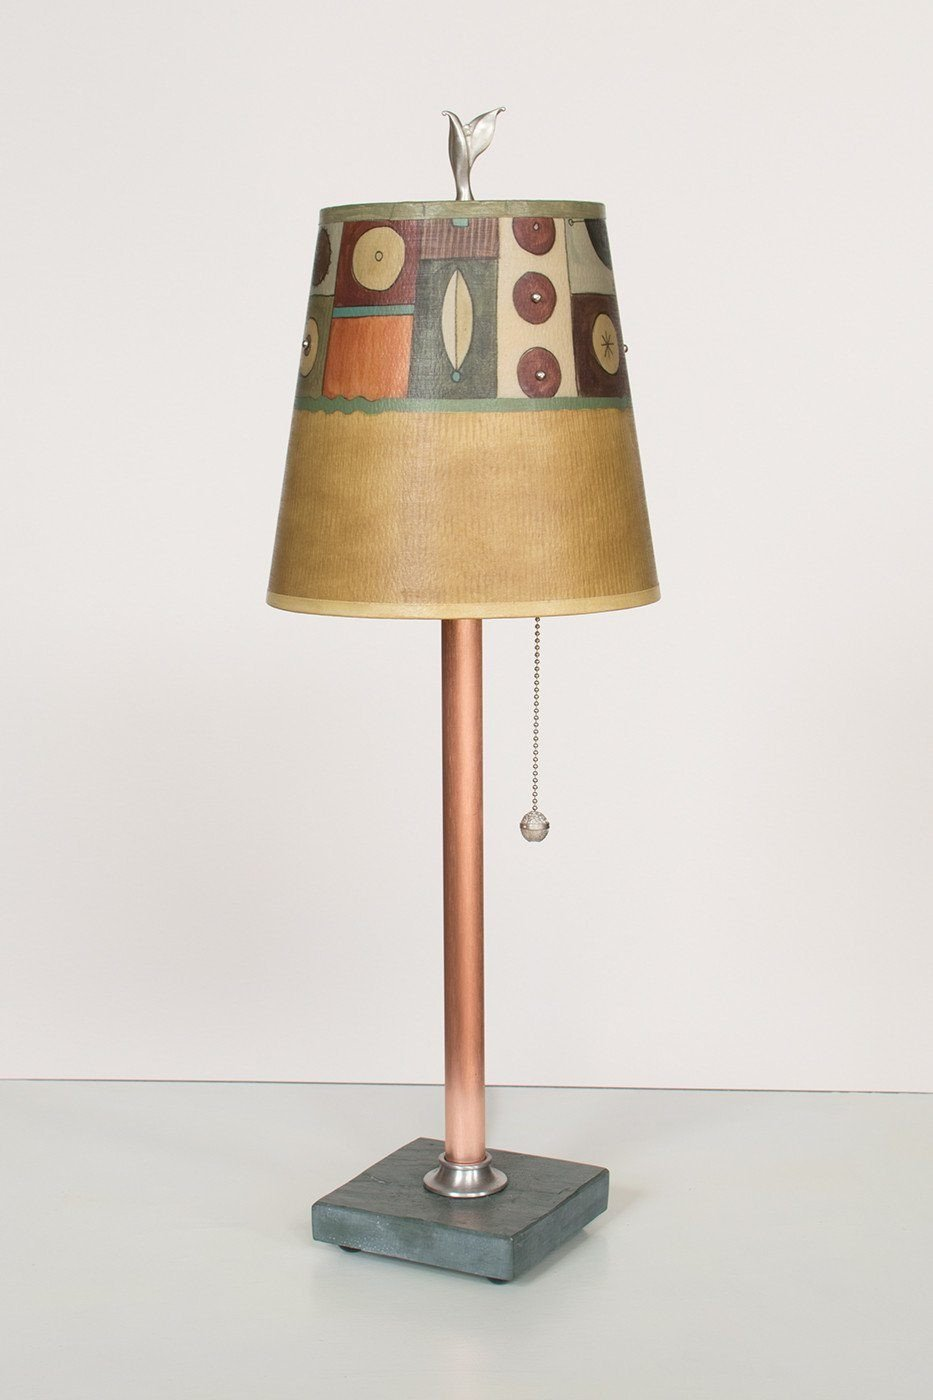 Copper Table Lamp on Vermont Slate Base with Small Drum Shade in Lucky Mosaic Hickory Lit